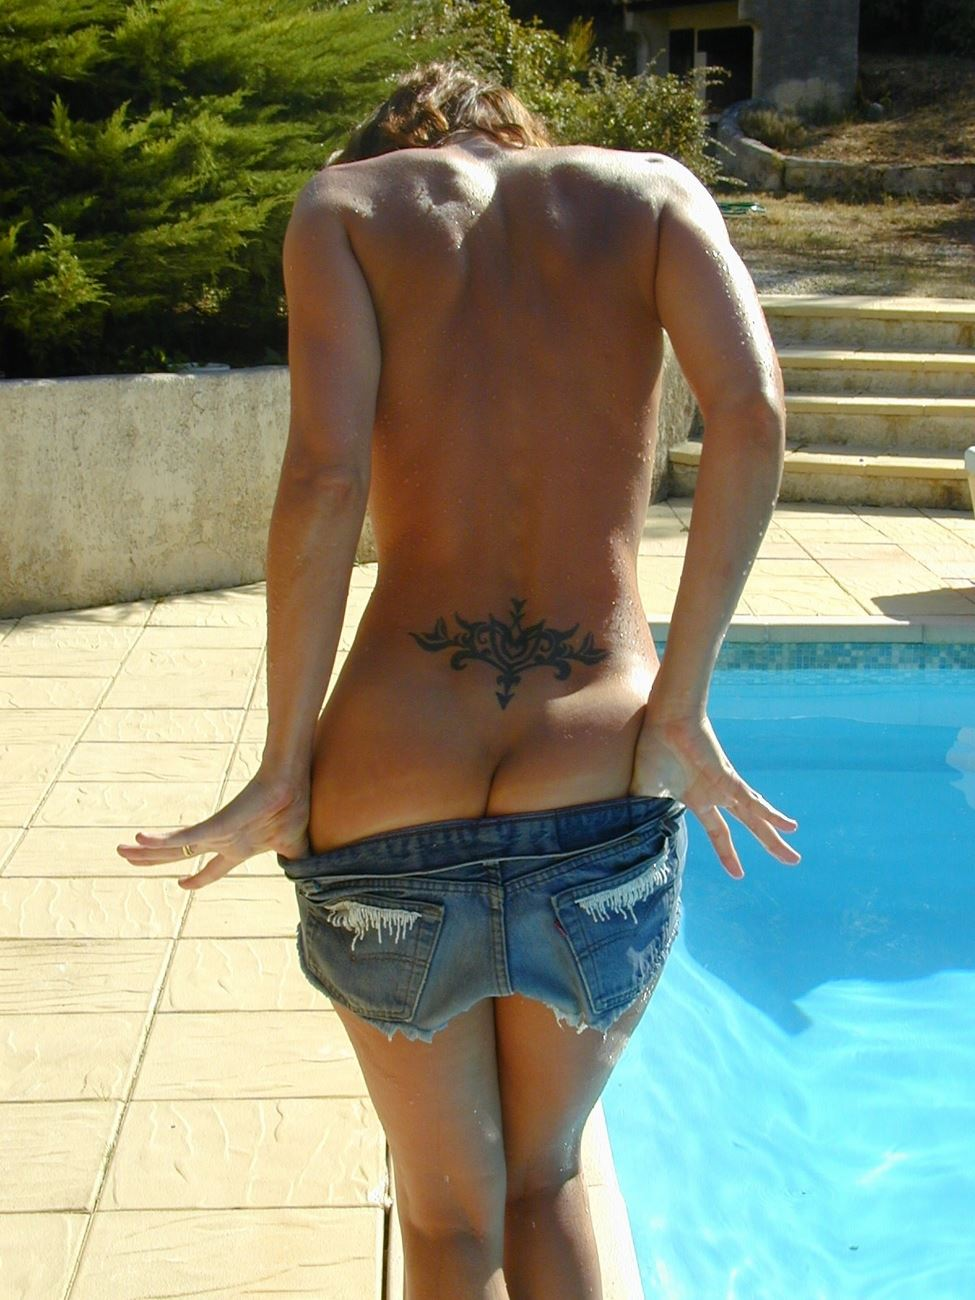 Naked Amateur Teen Skinny Dipping In Swimming Pool  Nude -8175